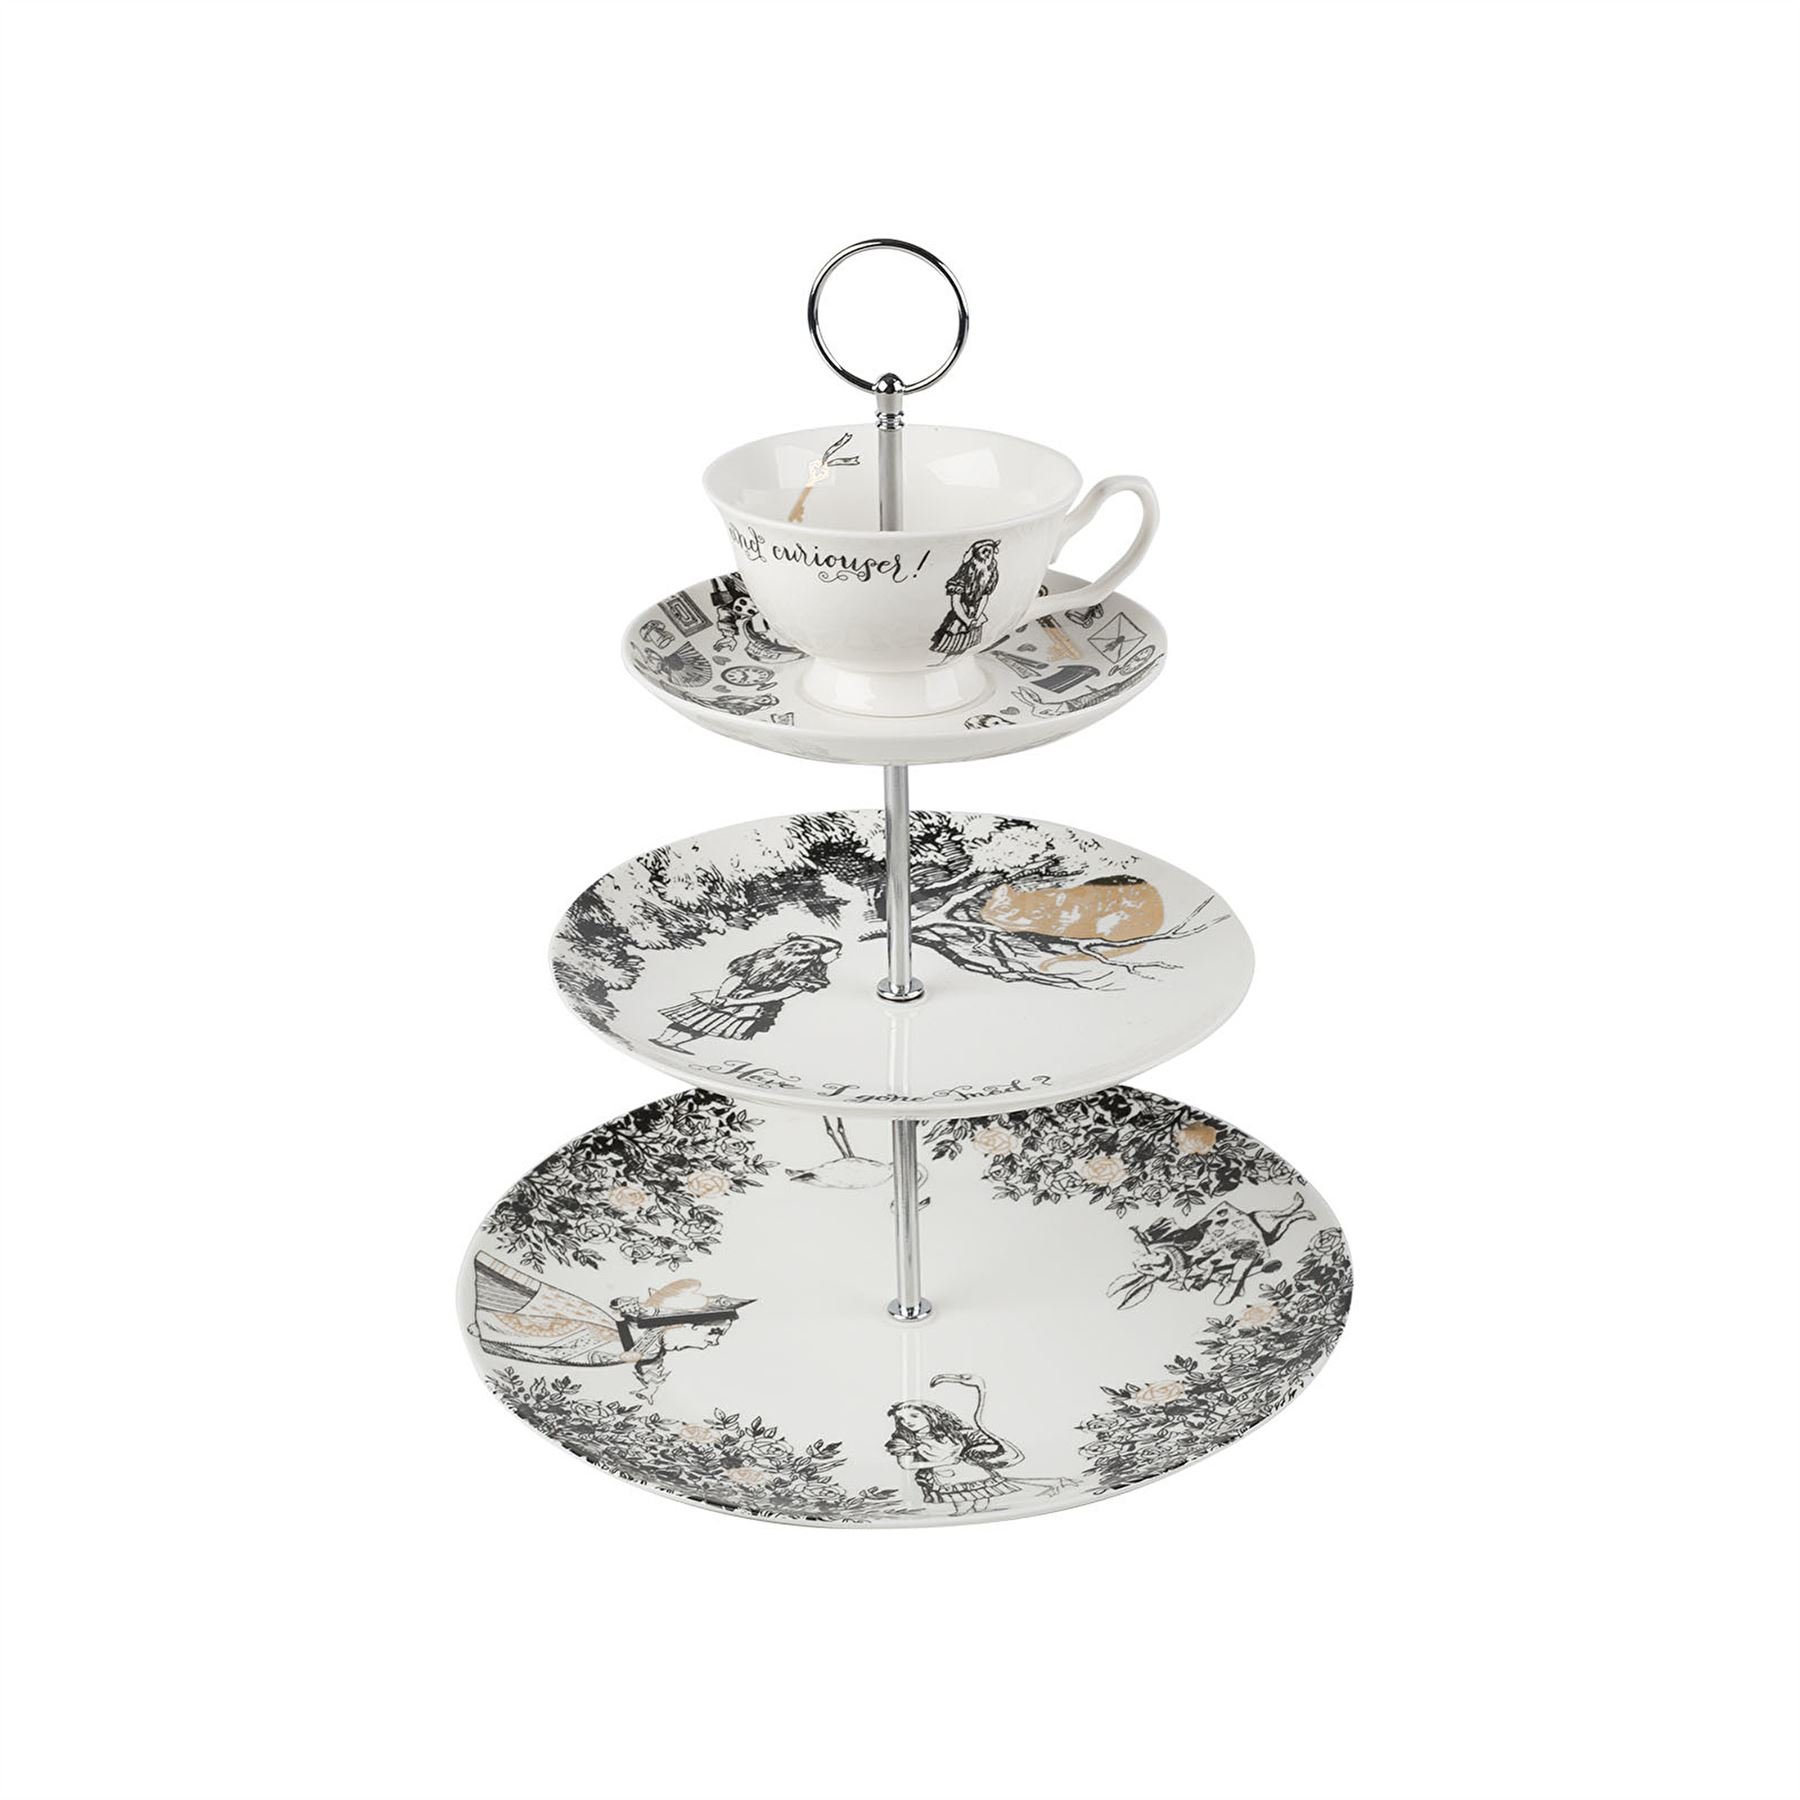 Creative Tops V&A Alice in Wonderland 3 Tier China Teacup Cake Stand Gift Boxed by CreativeTops (Image #1)